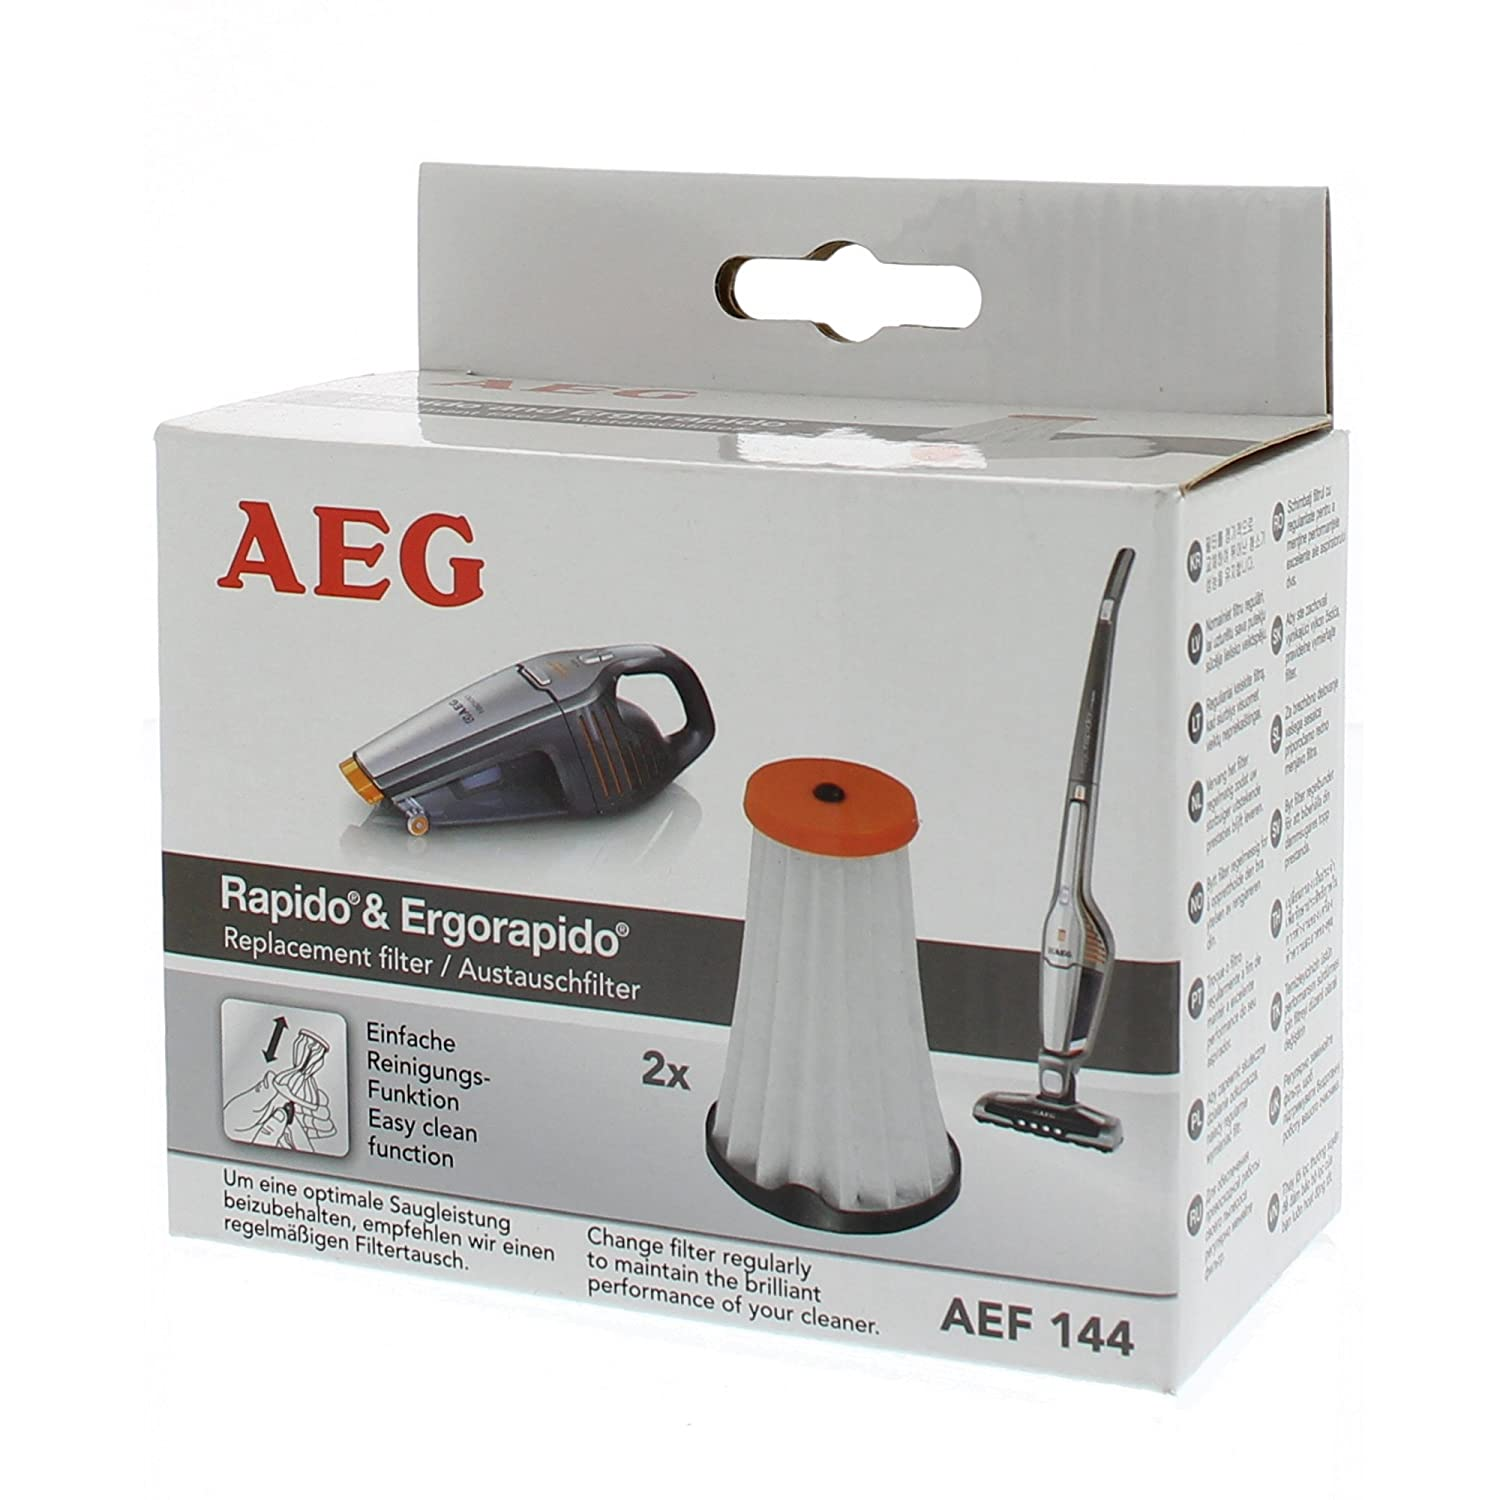 AEG AEF144 Rapido and Ergorapido Replacement Filters